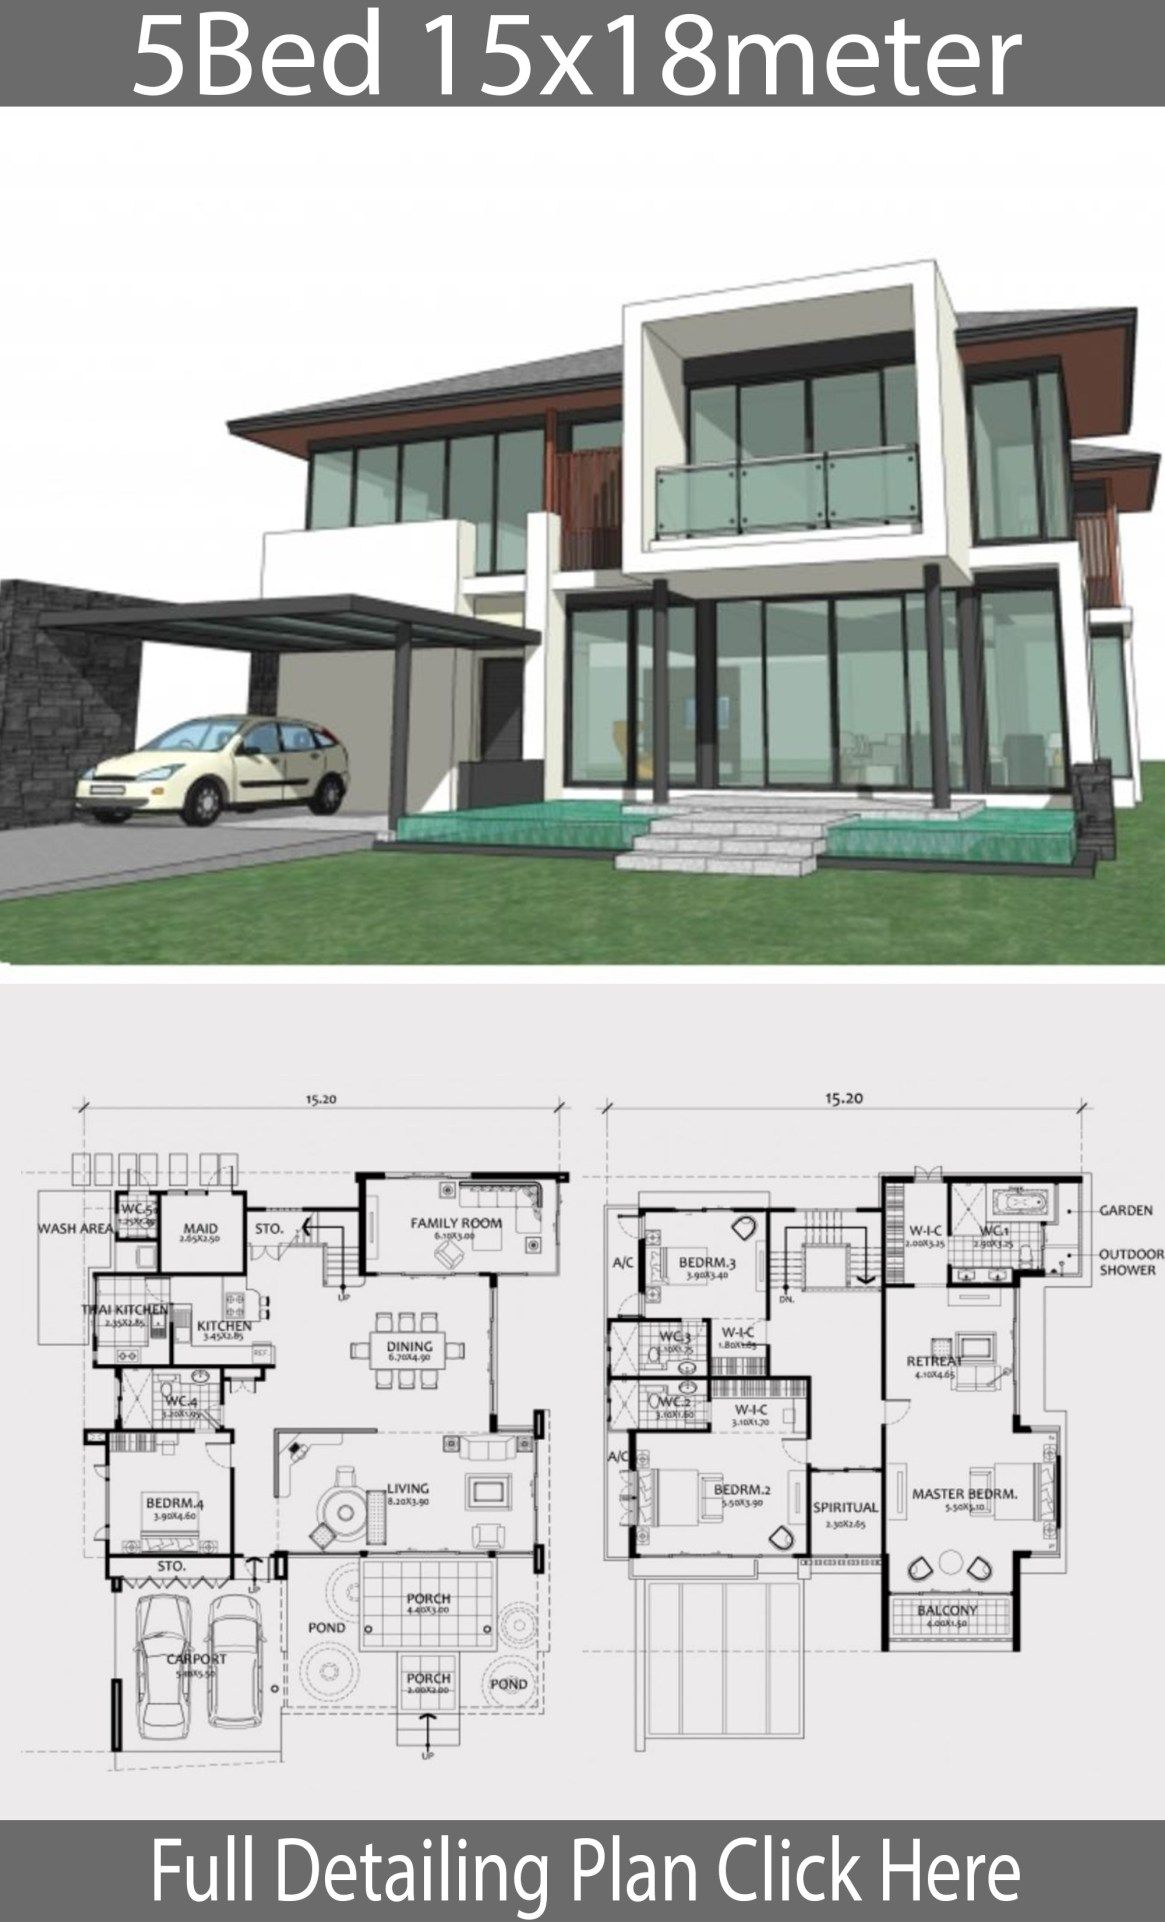 Home Design Plan 15x18m With 5 Bedrooms Home Design With Plansearch Home Design Plan Model House Plan Bungalow House Design